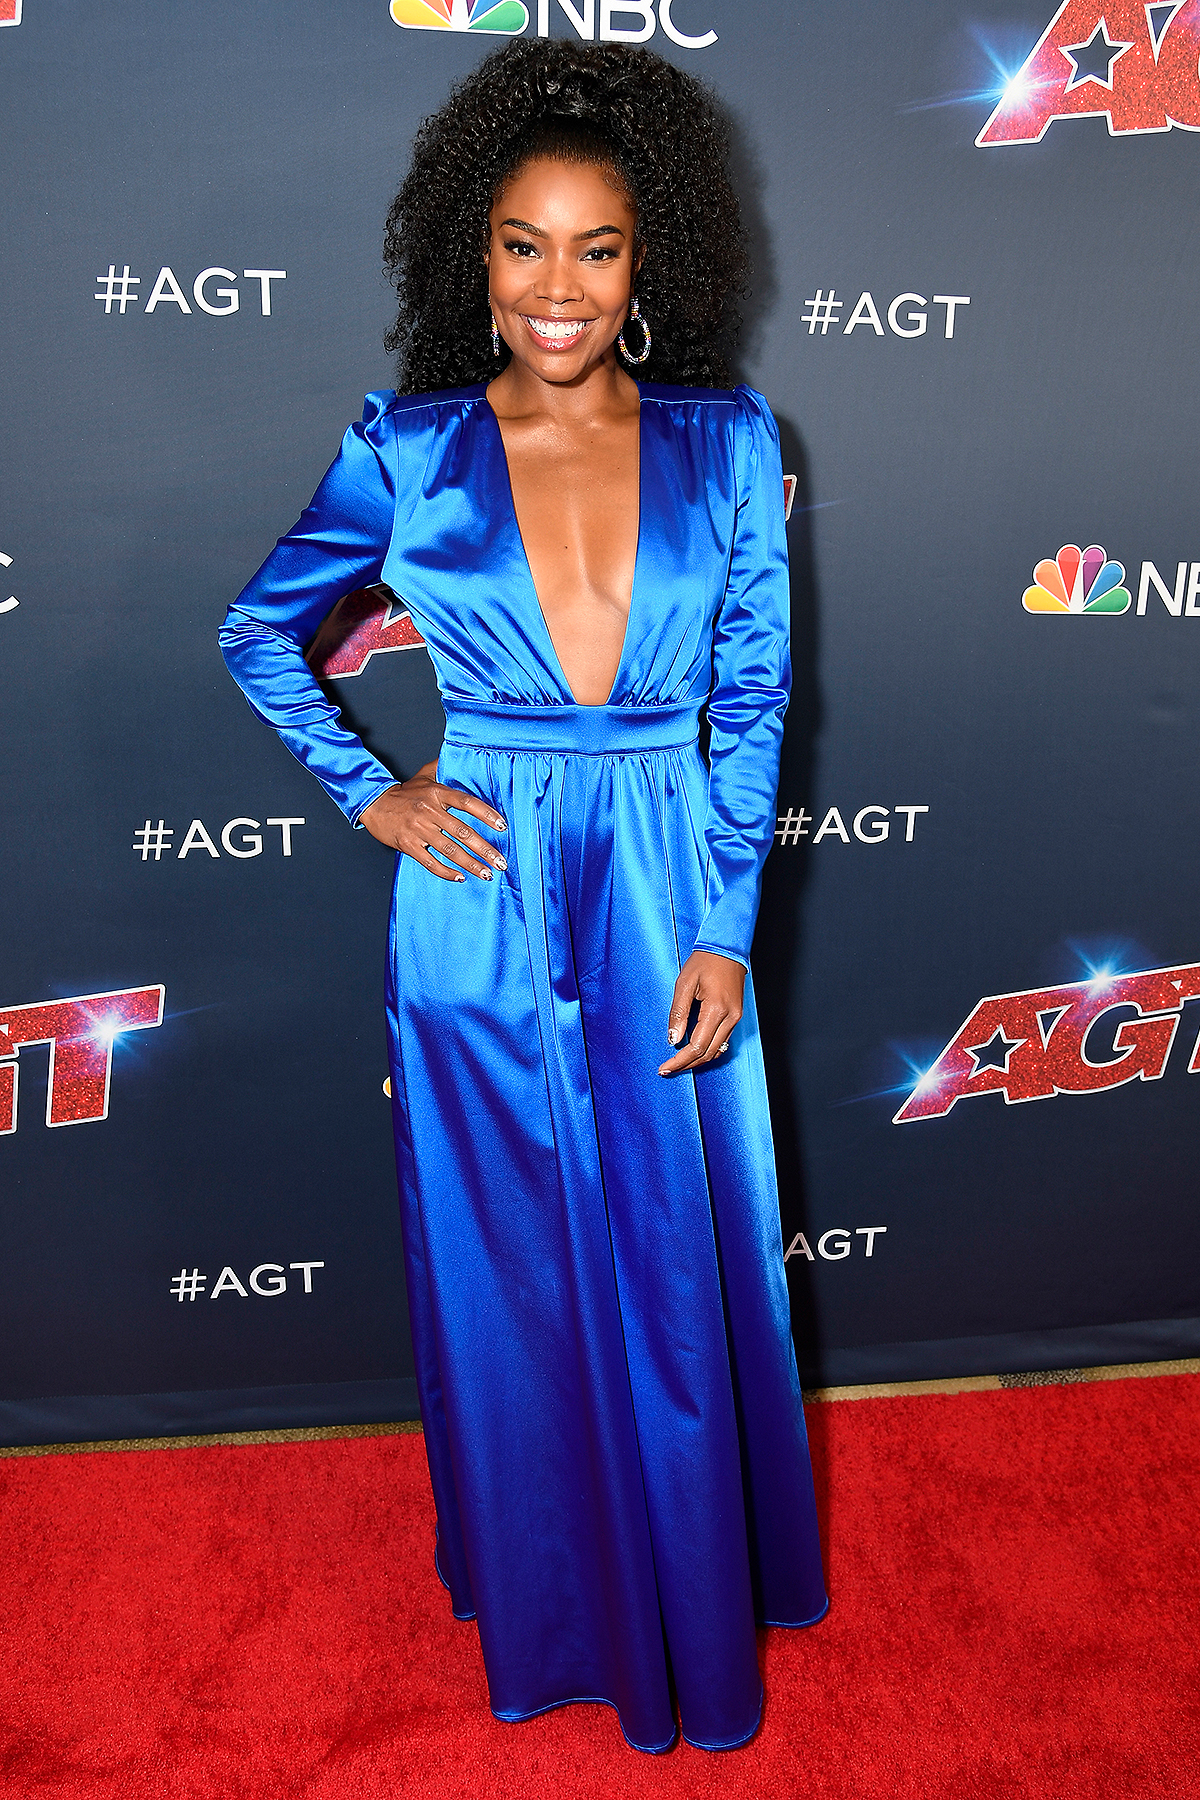 gabrielle-union-in-new-york-&-company-jumpsuit-@-'america's-got-talent'